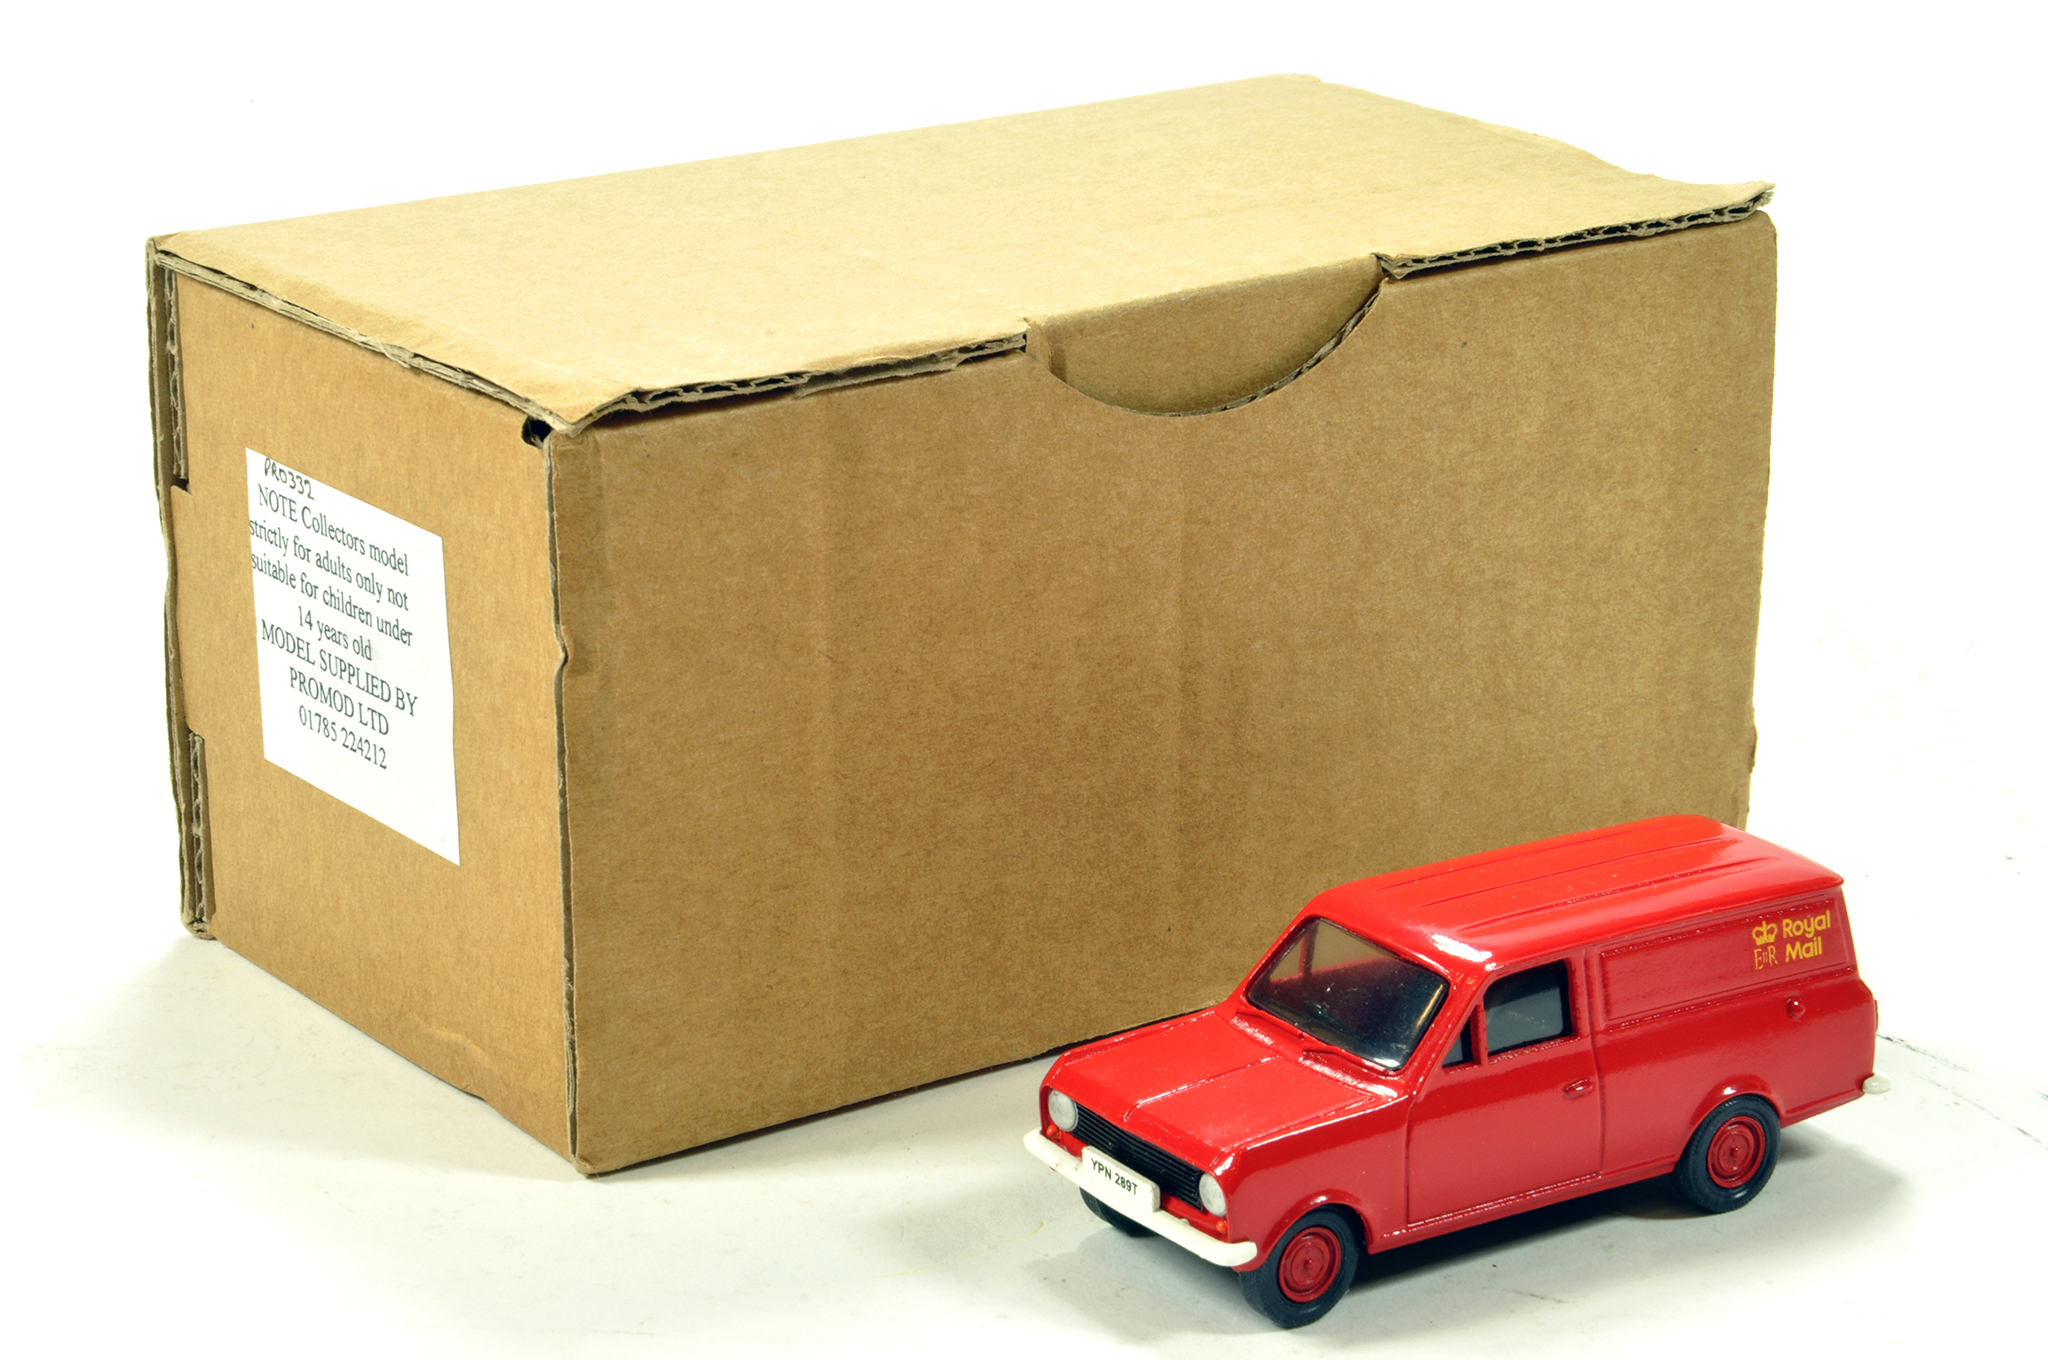 Lot 616 - Promod 1/50 commercial issue comprising Royal Mail Van. E to NM.